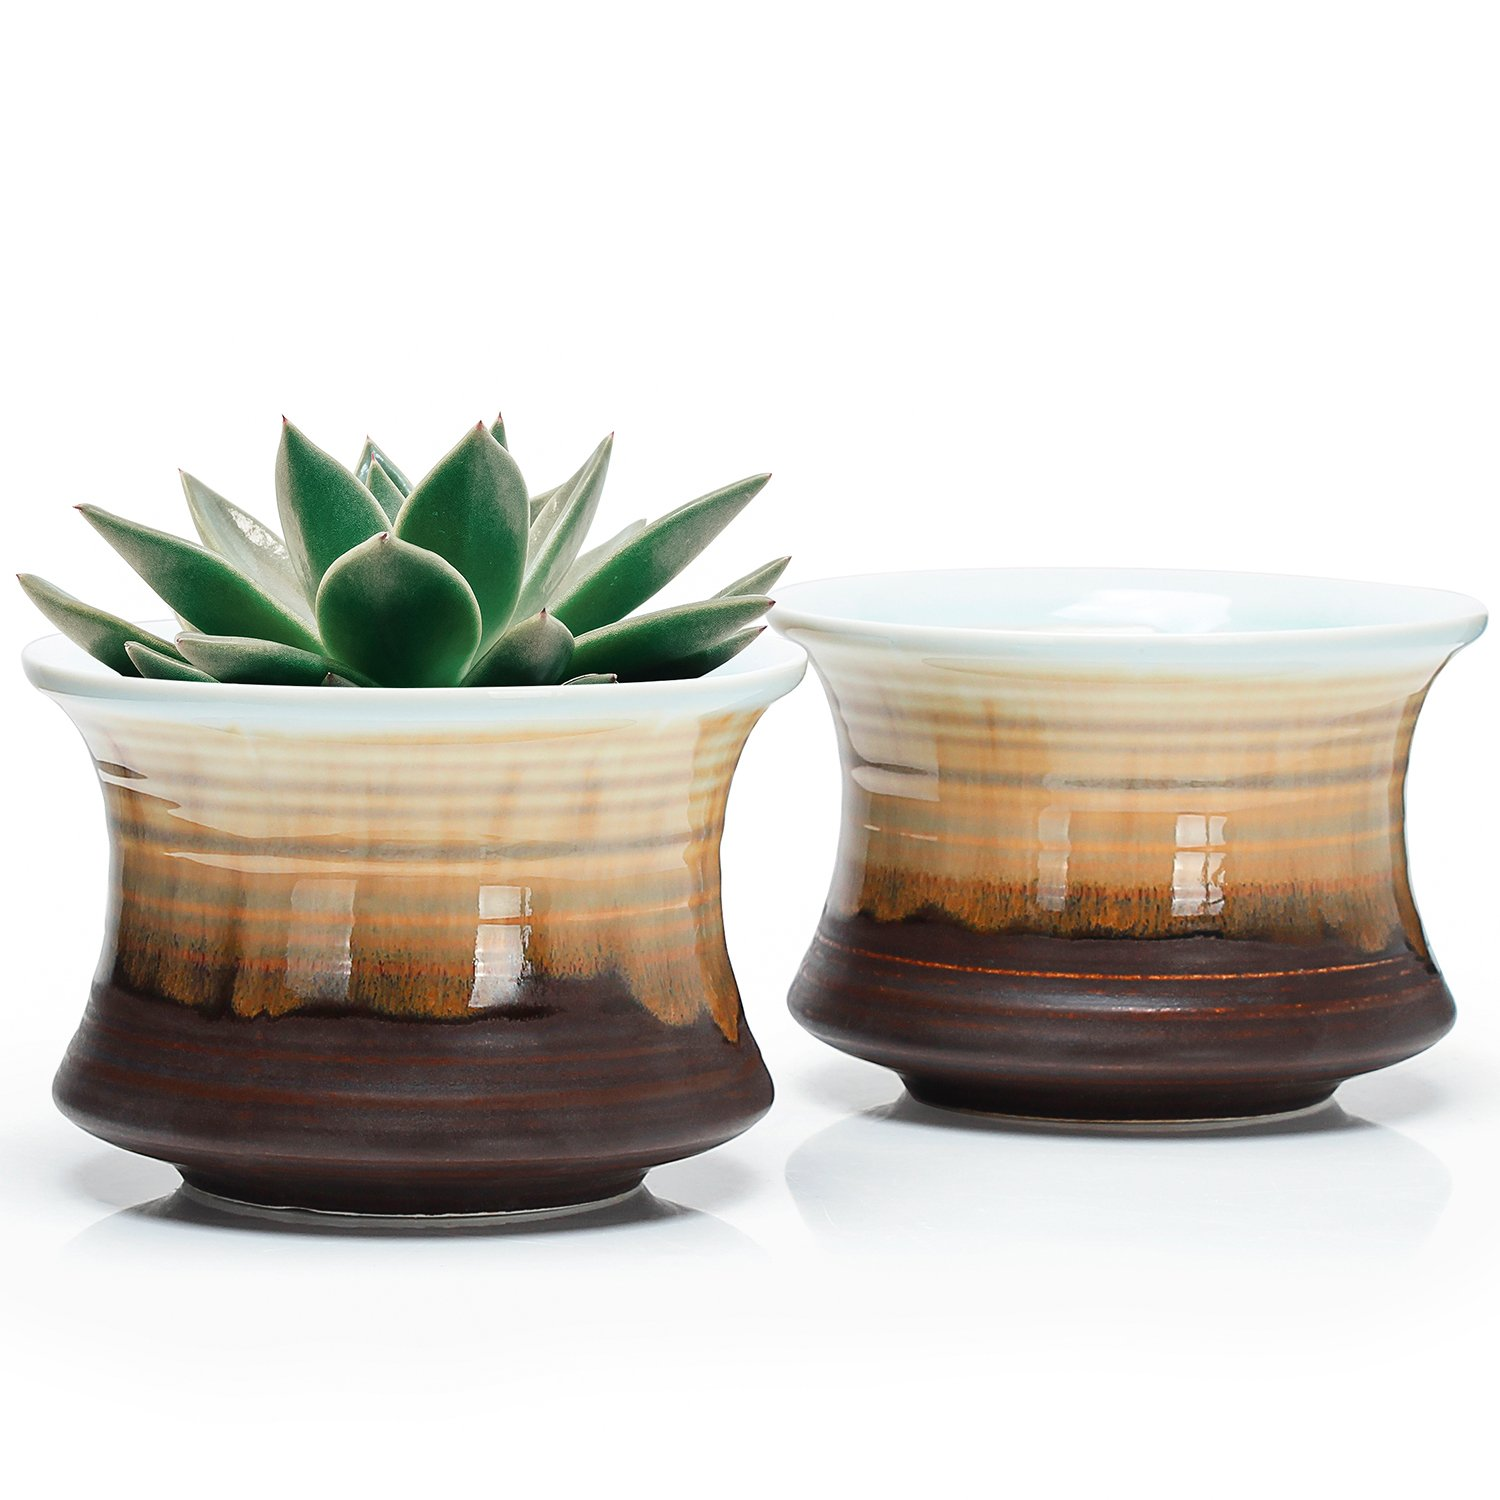 Greenaholics Succulent Plant Pots - 4.3 Inch Flowing Glaze Ceramic Bottle Pots, Cactus Planters, Flower Pots with Drainage Hole, Chocolate Black, Set of 2